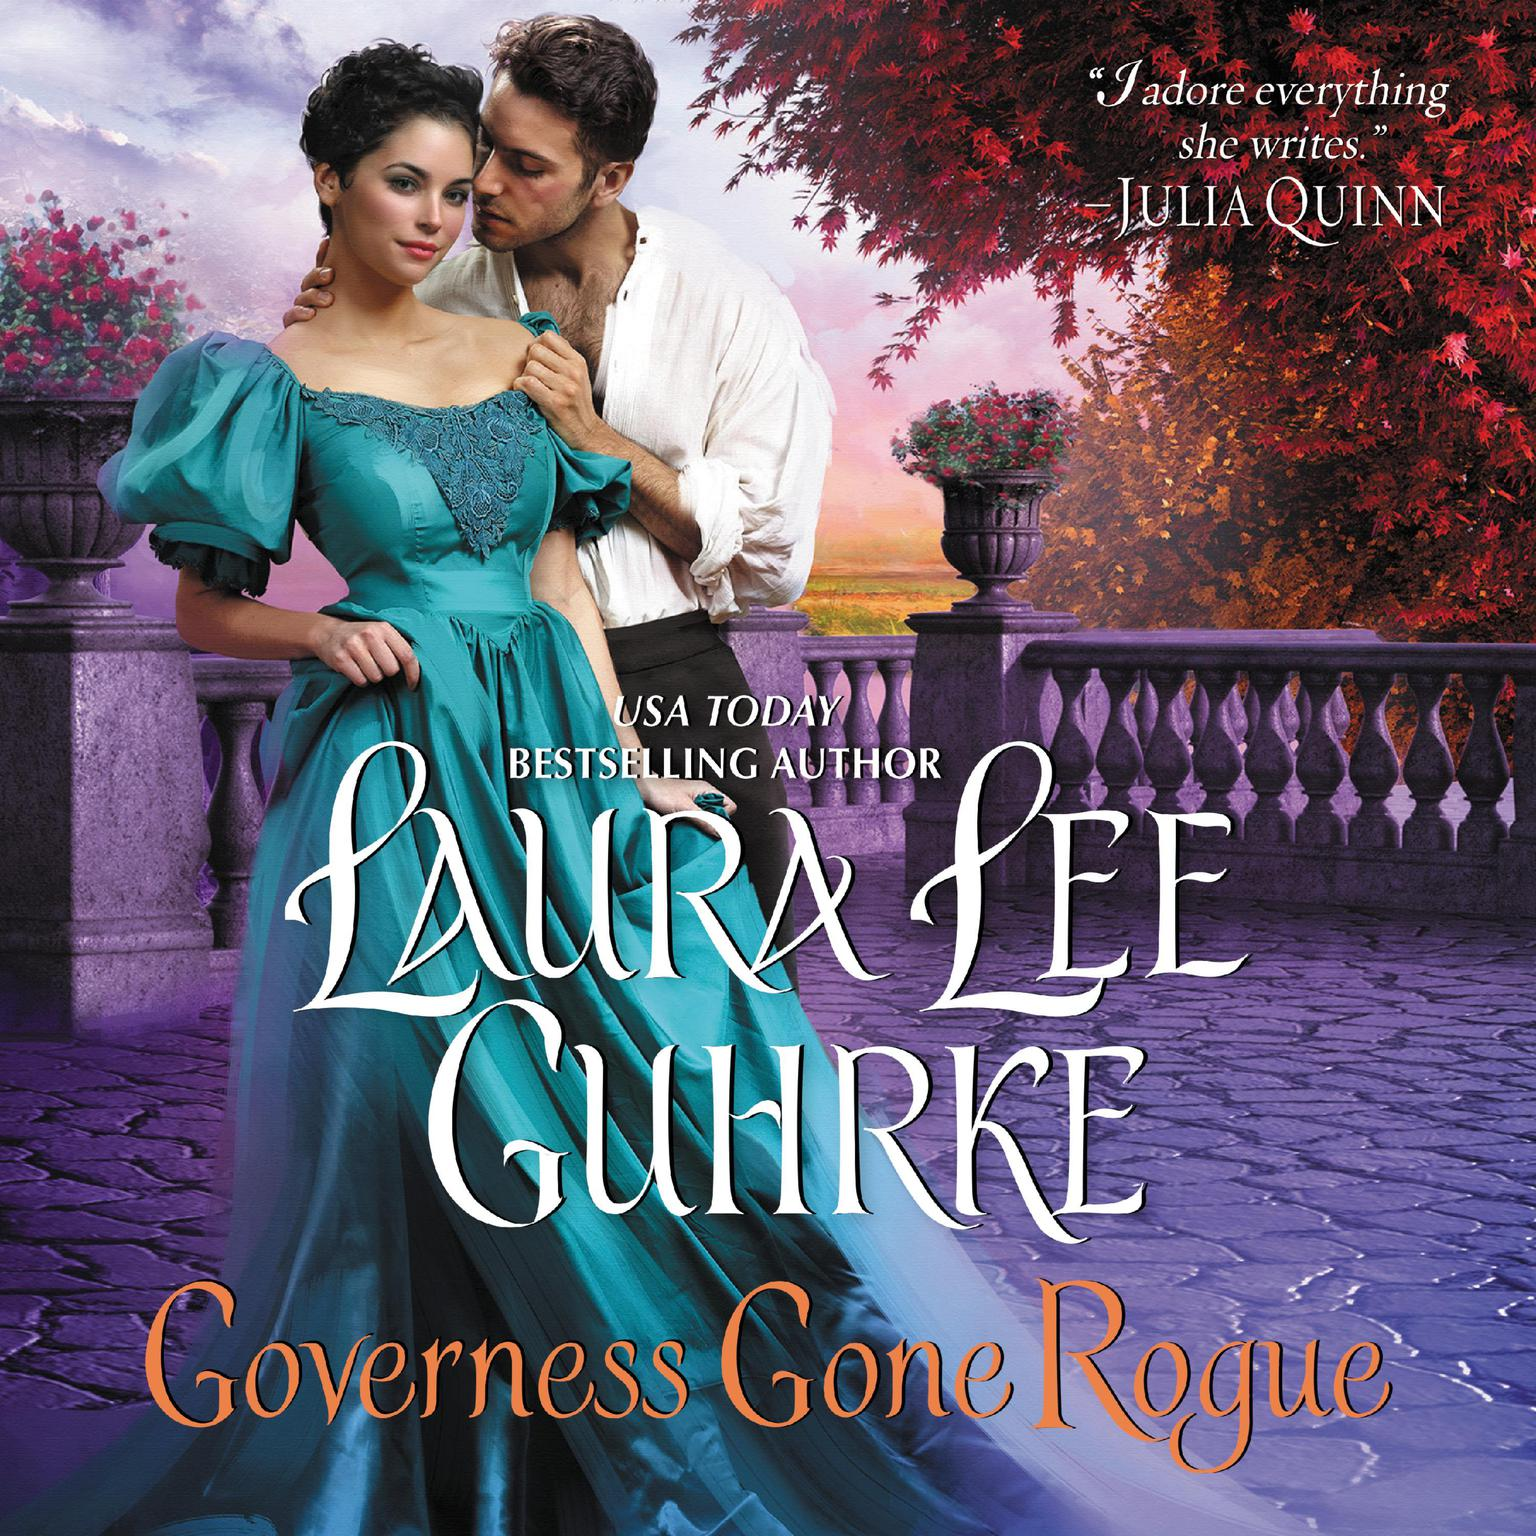 Printable Governess Gone Rogue: A Novel Audiobook Cover Art